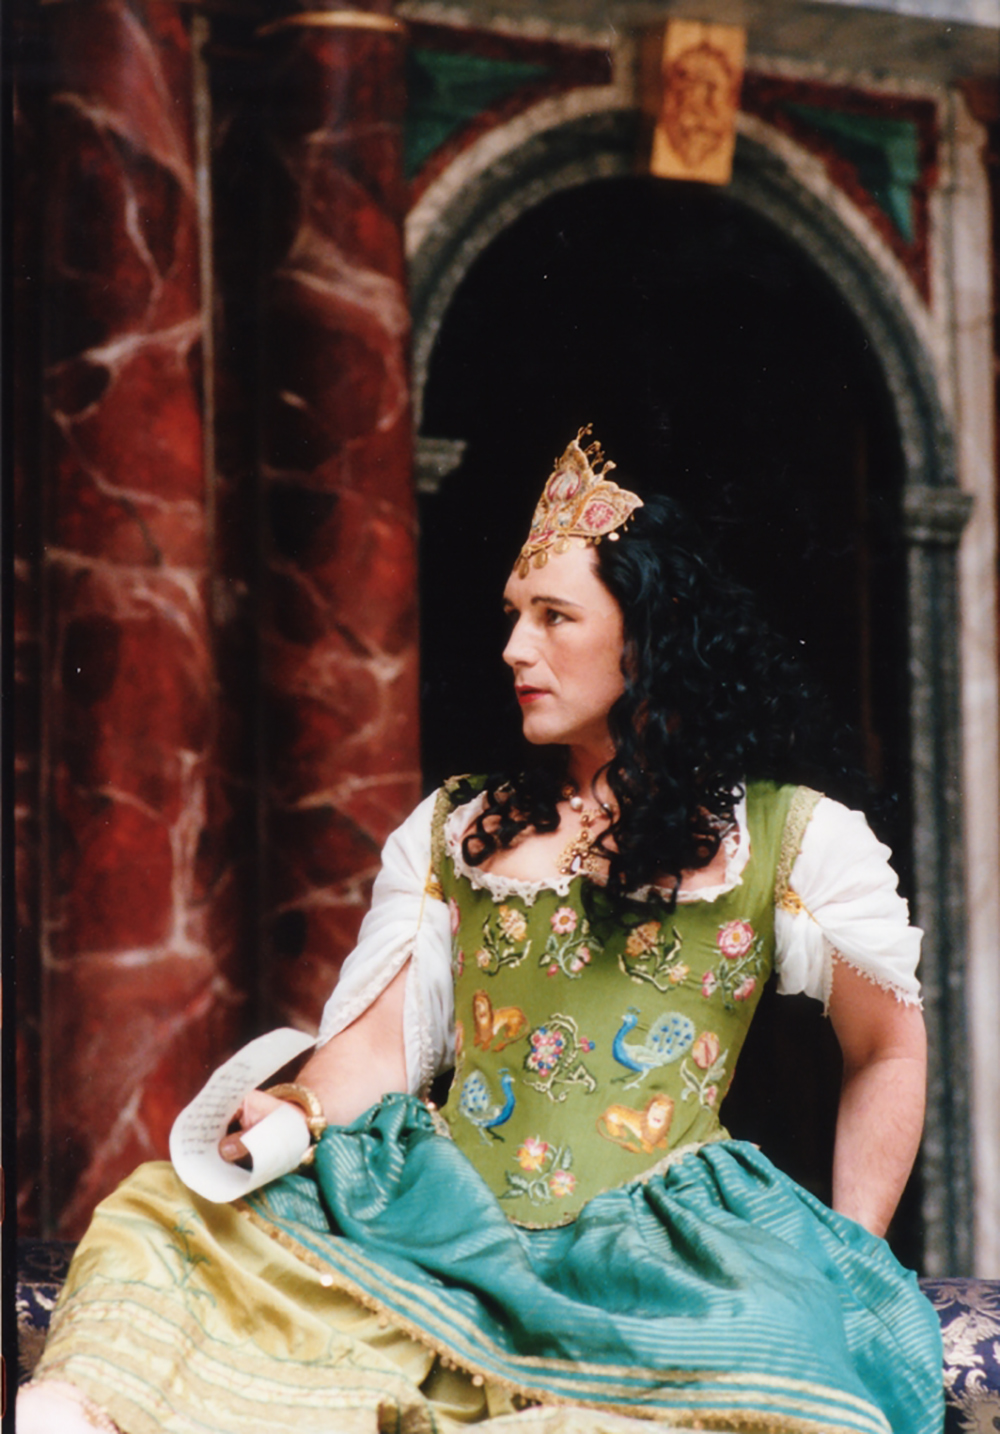 A man wearing a green corset dress sits on the Globe Theatre stage.